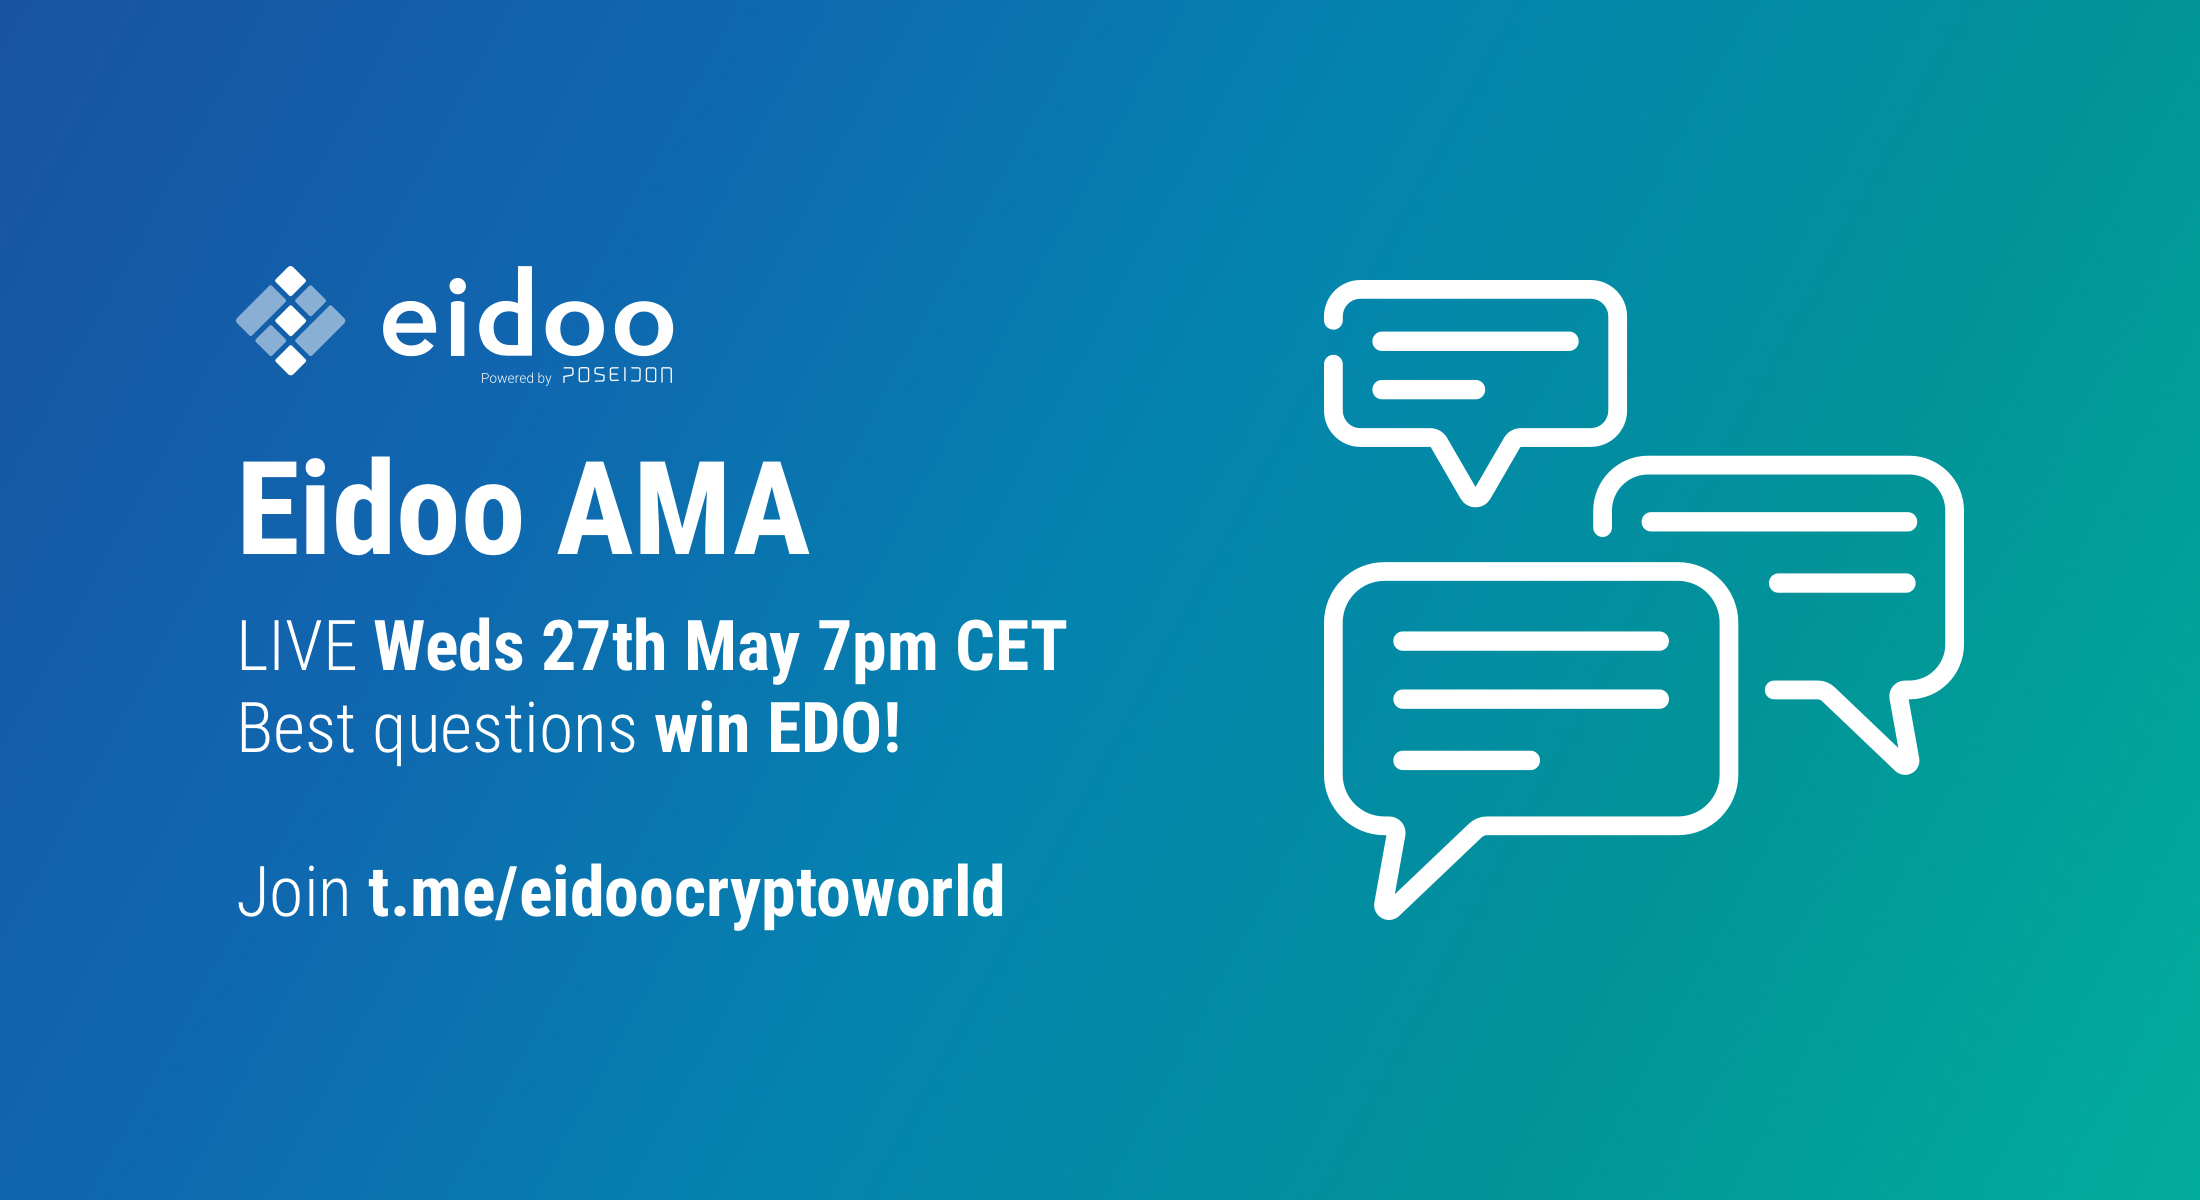 Join the Eidoo AMA!